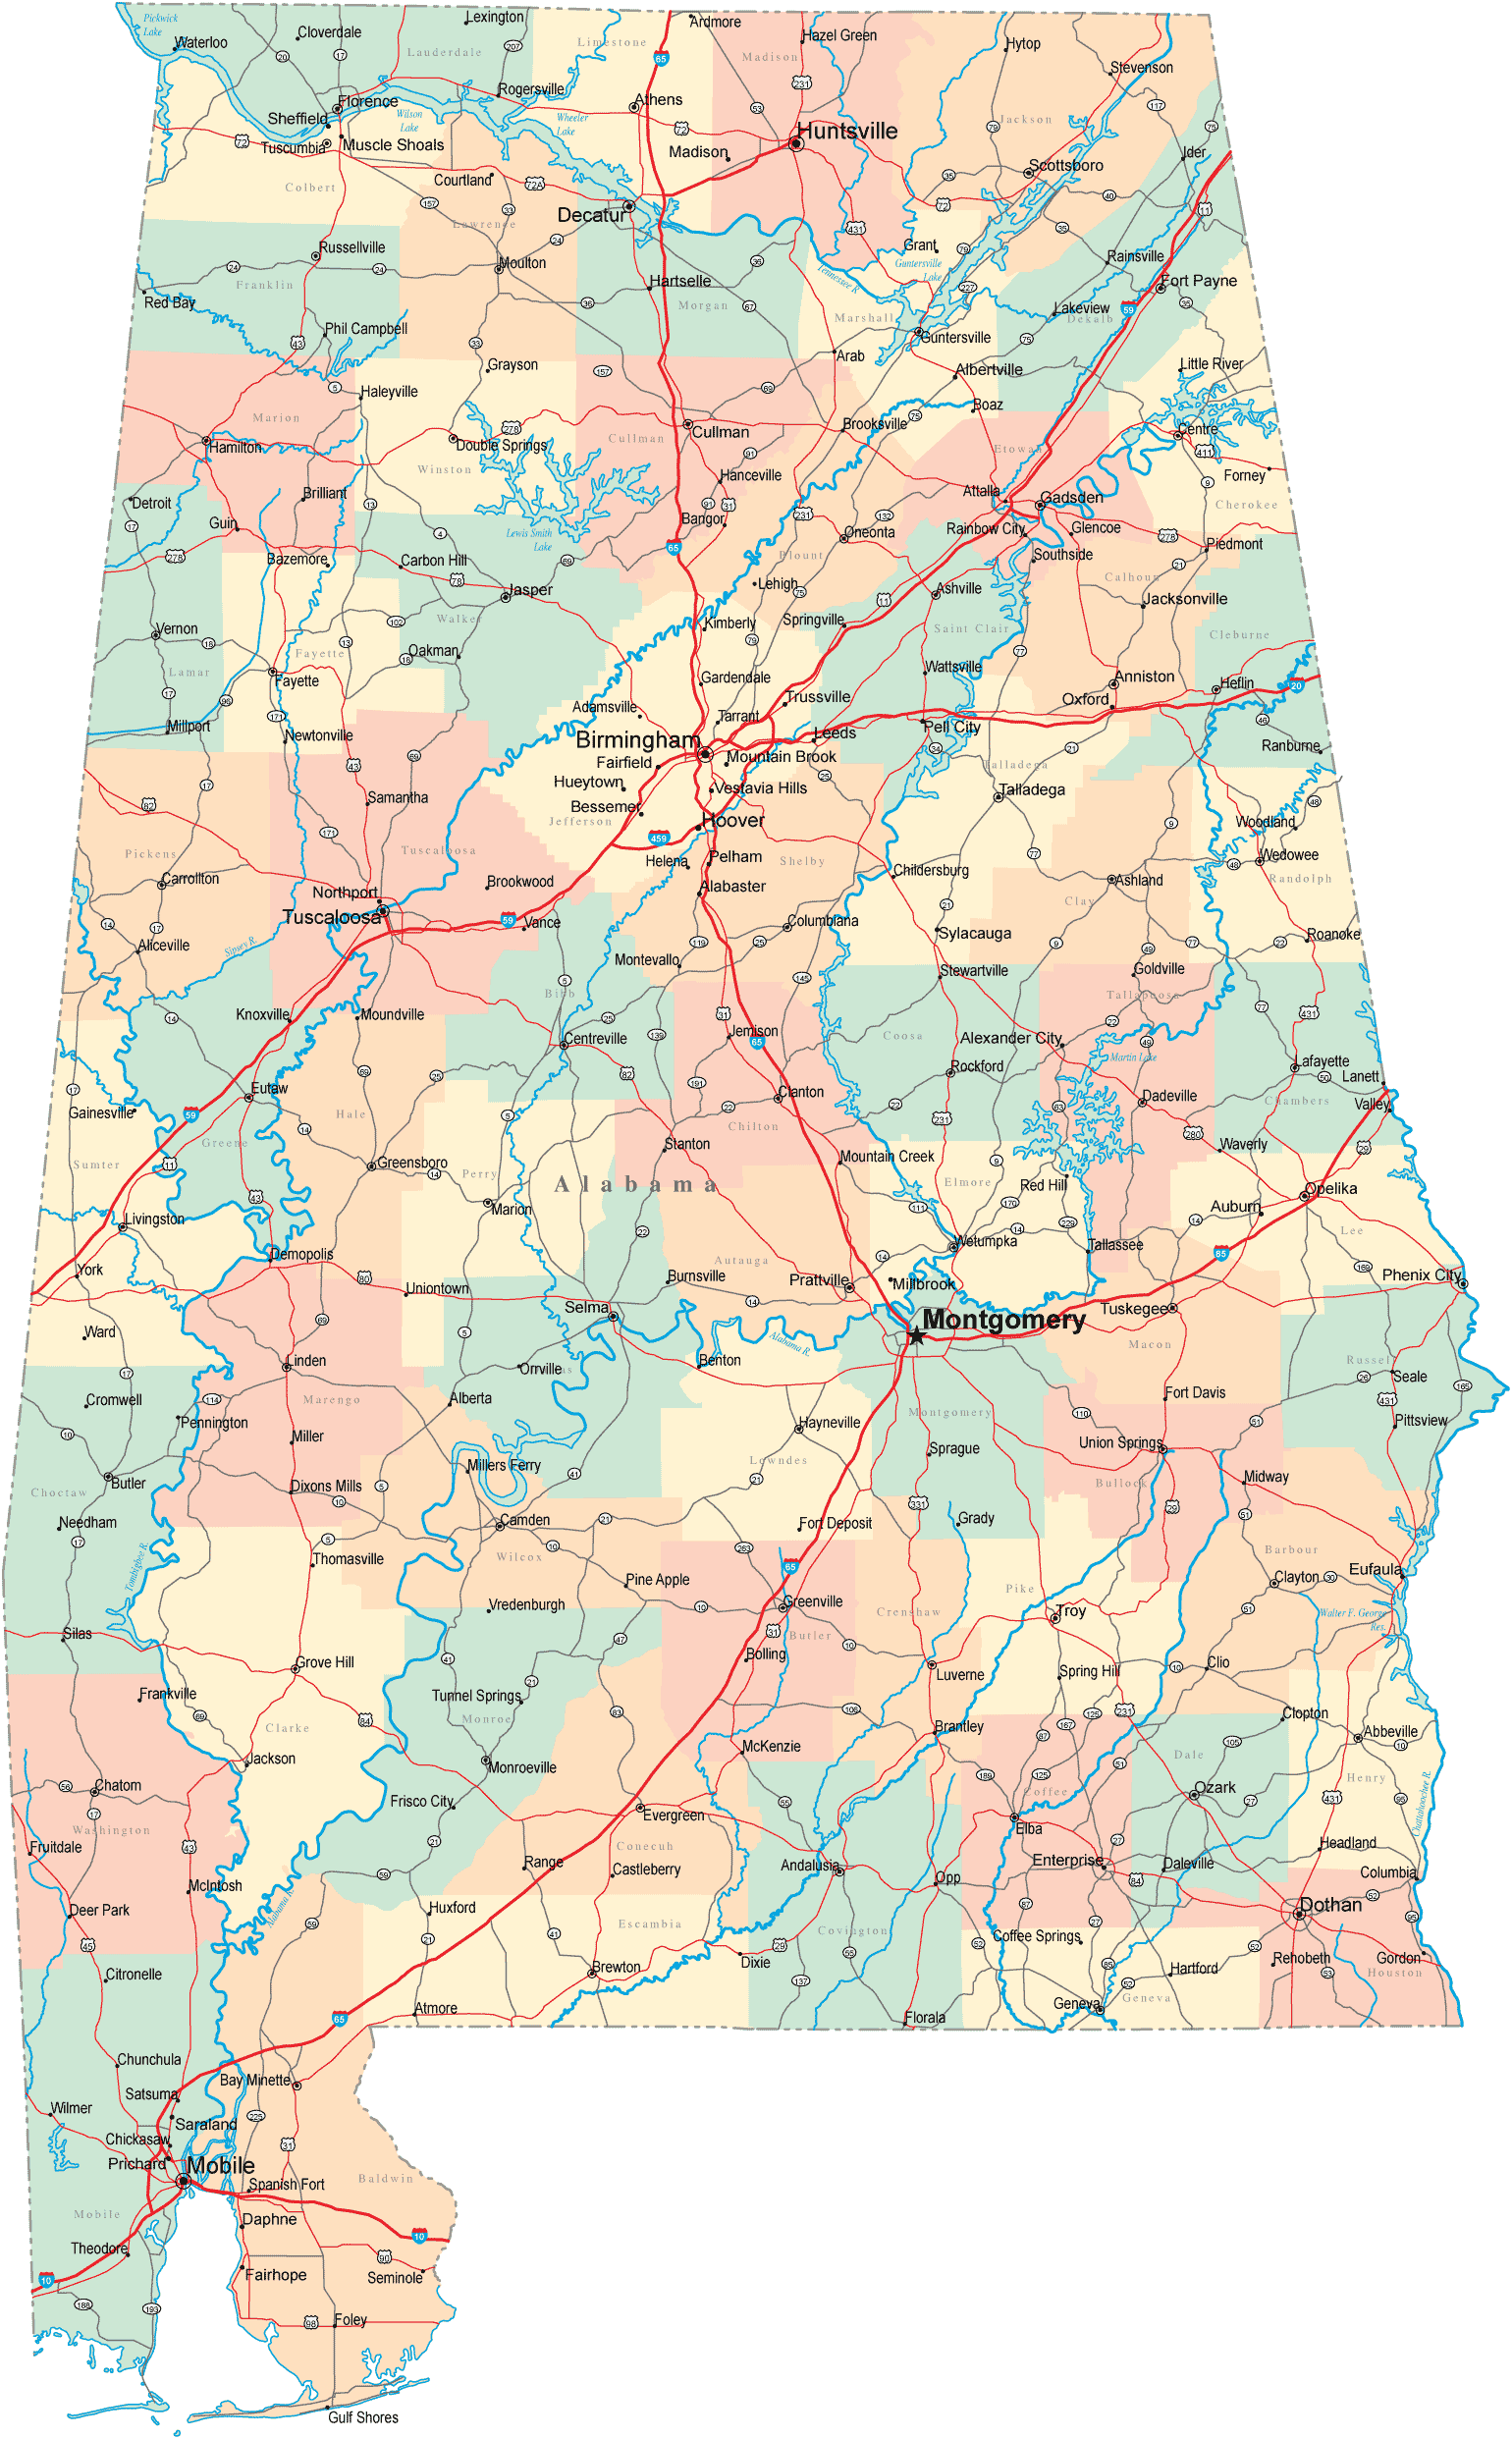 Alabama Road Map Mapsofnet - Map of alabama with cities and towns